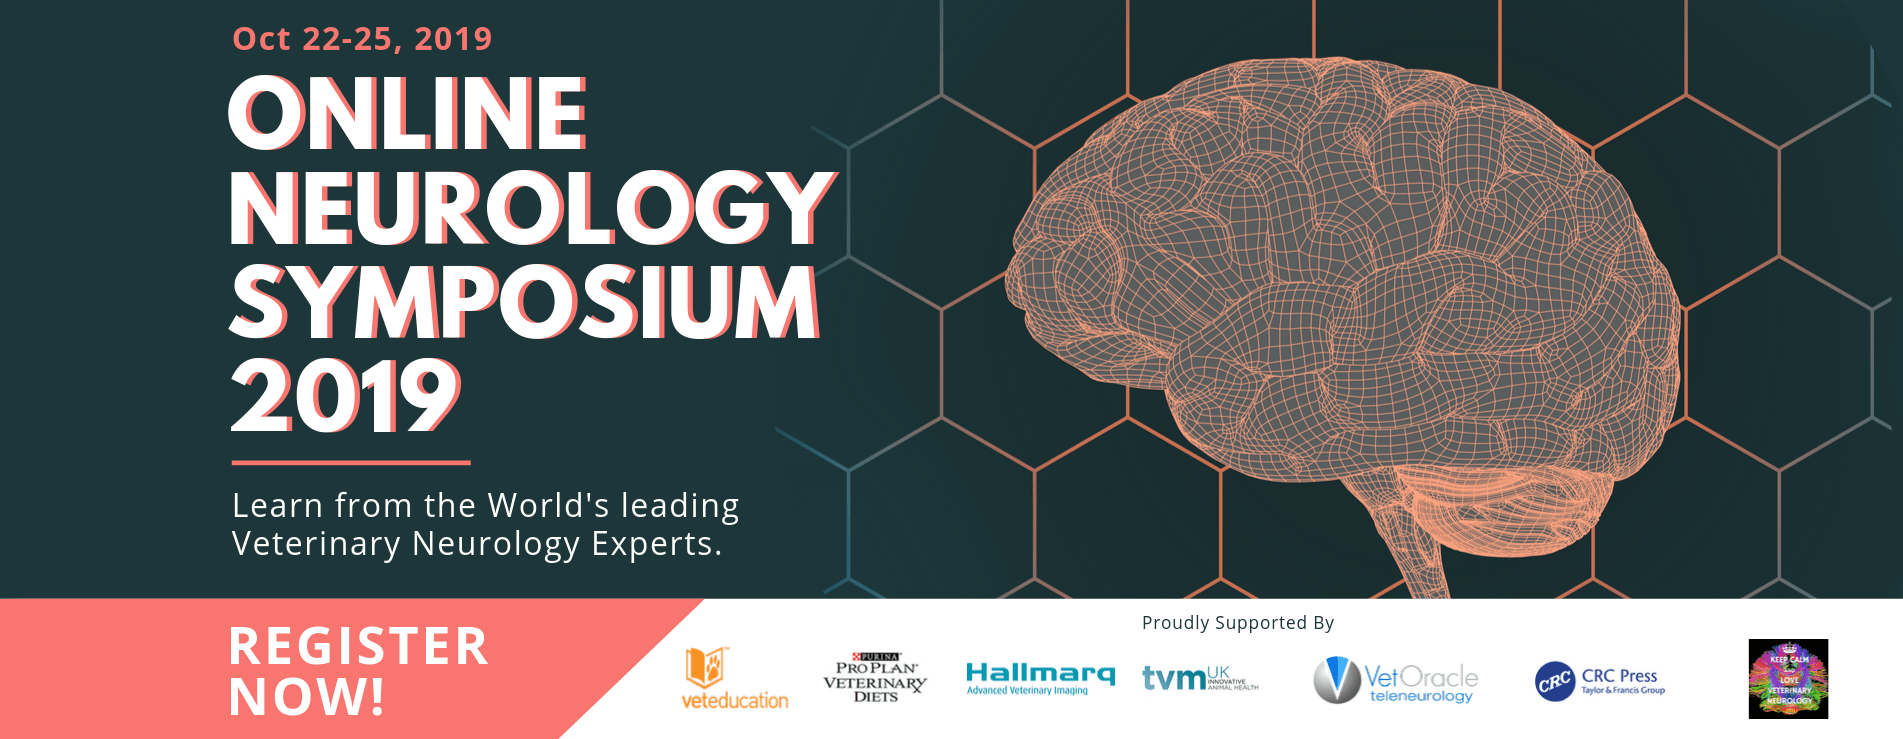 neurology symposium 2019